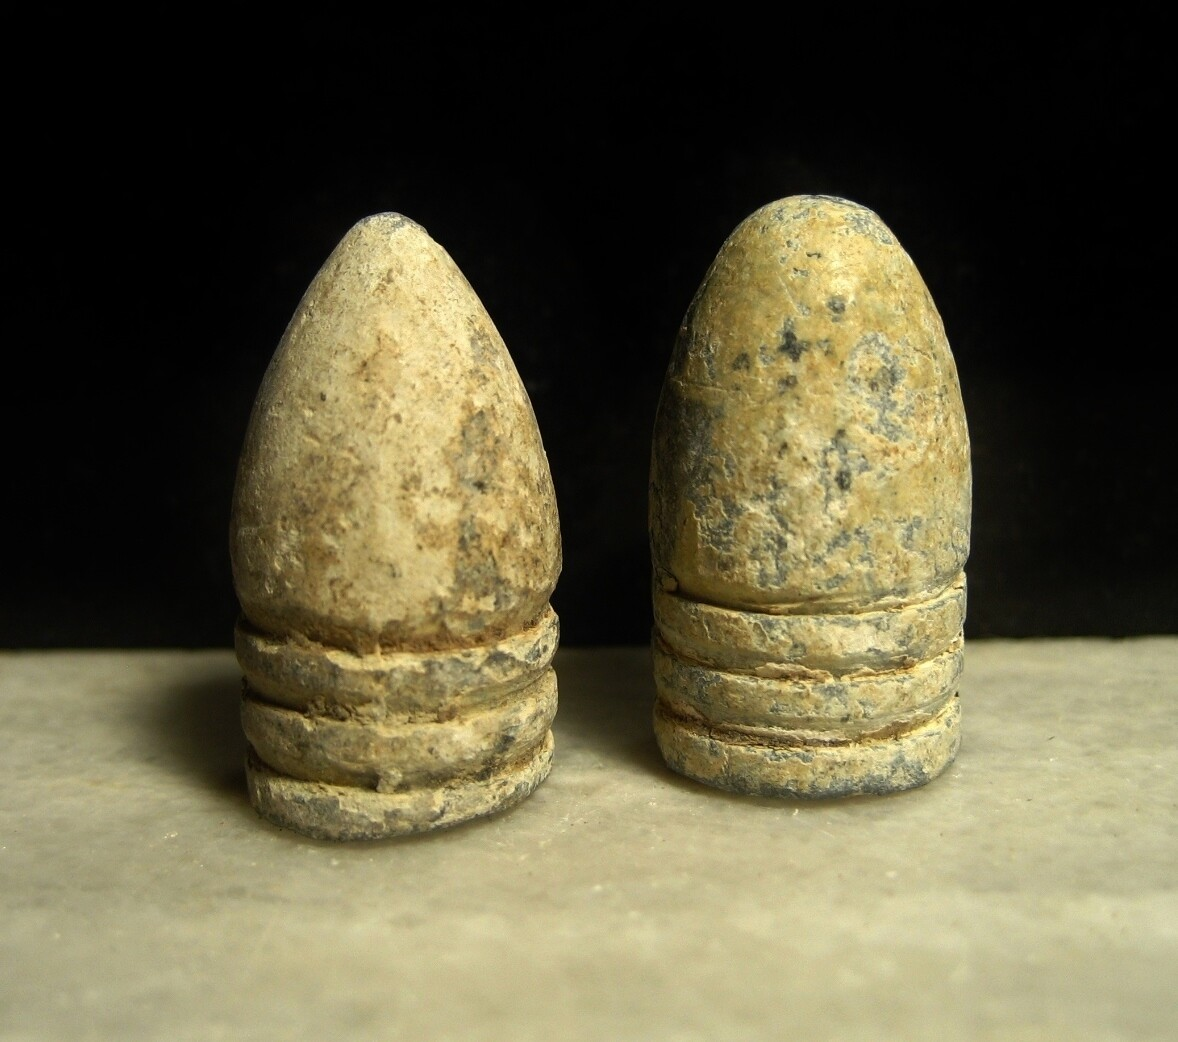 JUST ADDED ON 2/26 - GETTYSBURG - THE JOHN'S FARM / PICKETT'S CHARGE / ROSENSTEEL COLLECTION - Two .58 Caliber Bullets - found by the Sanders Brothers 1930s-1950s